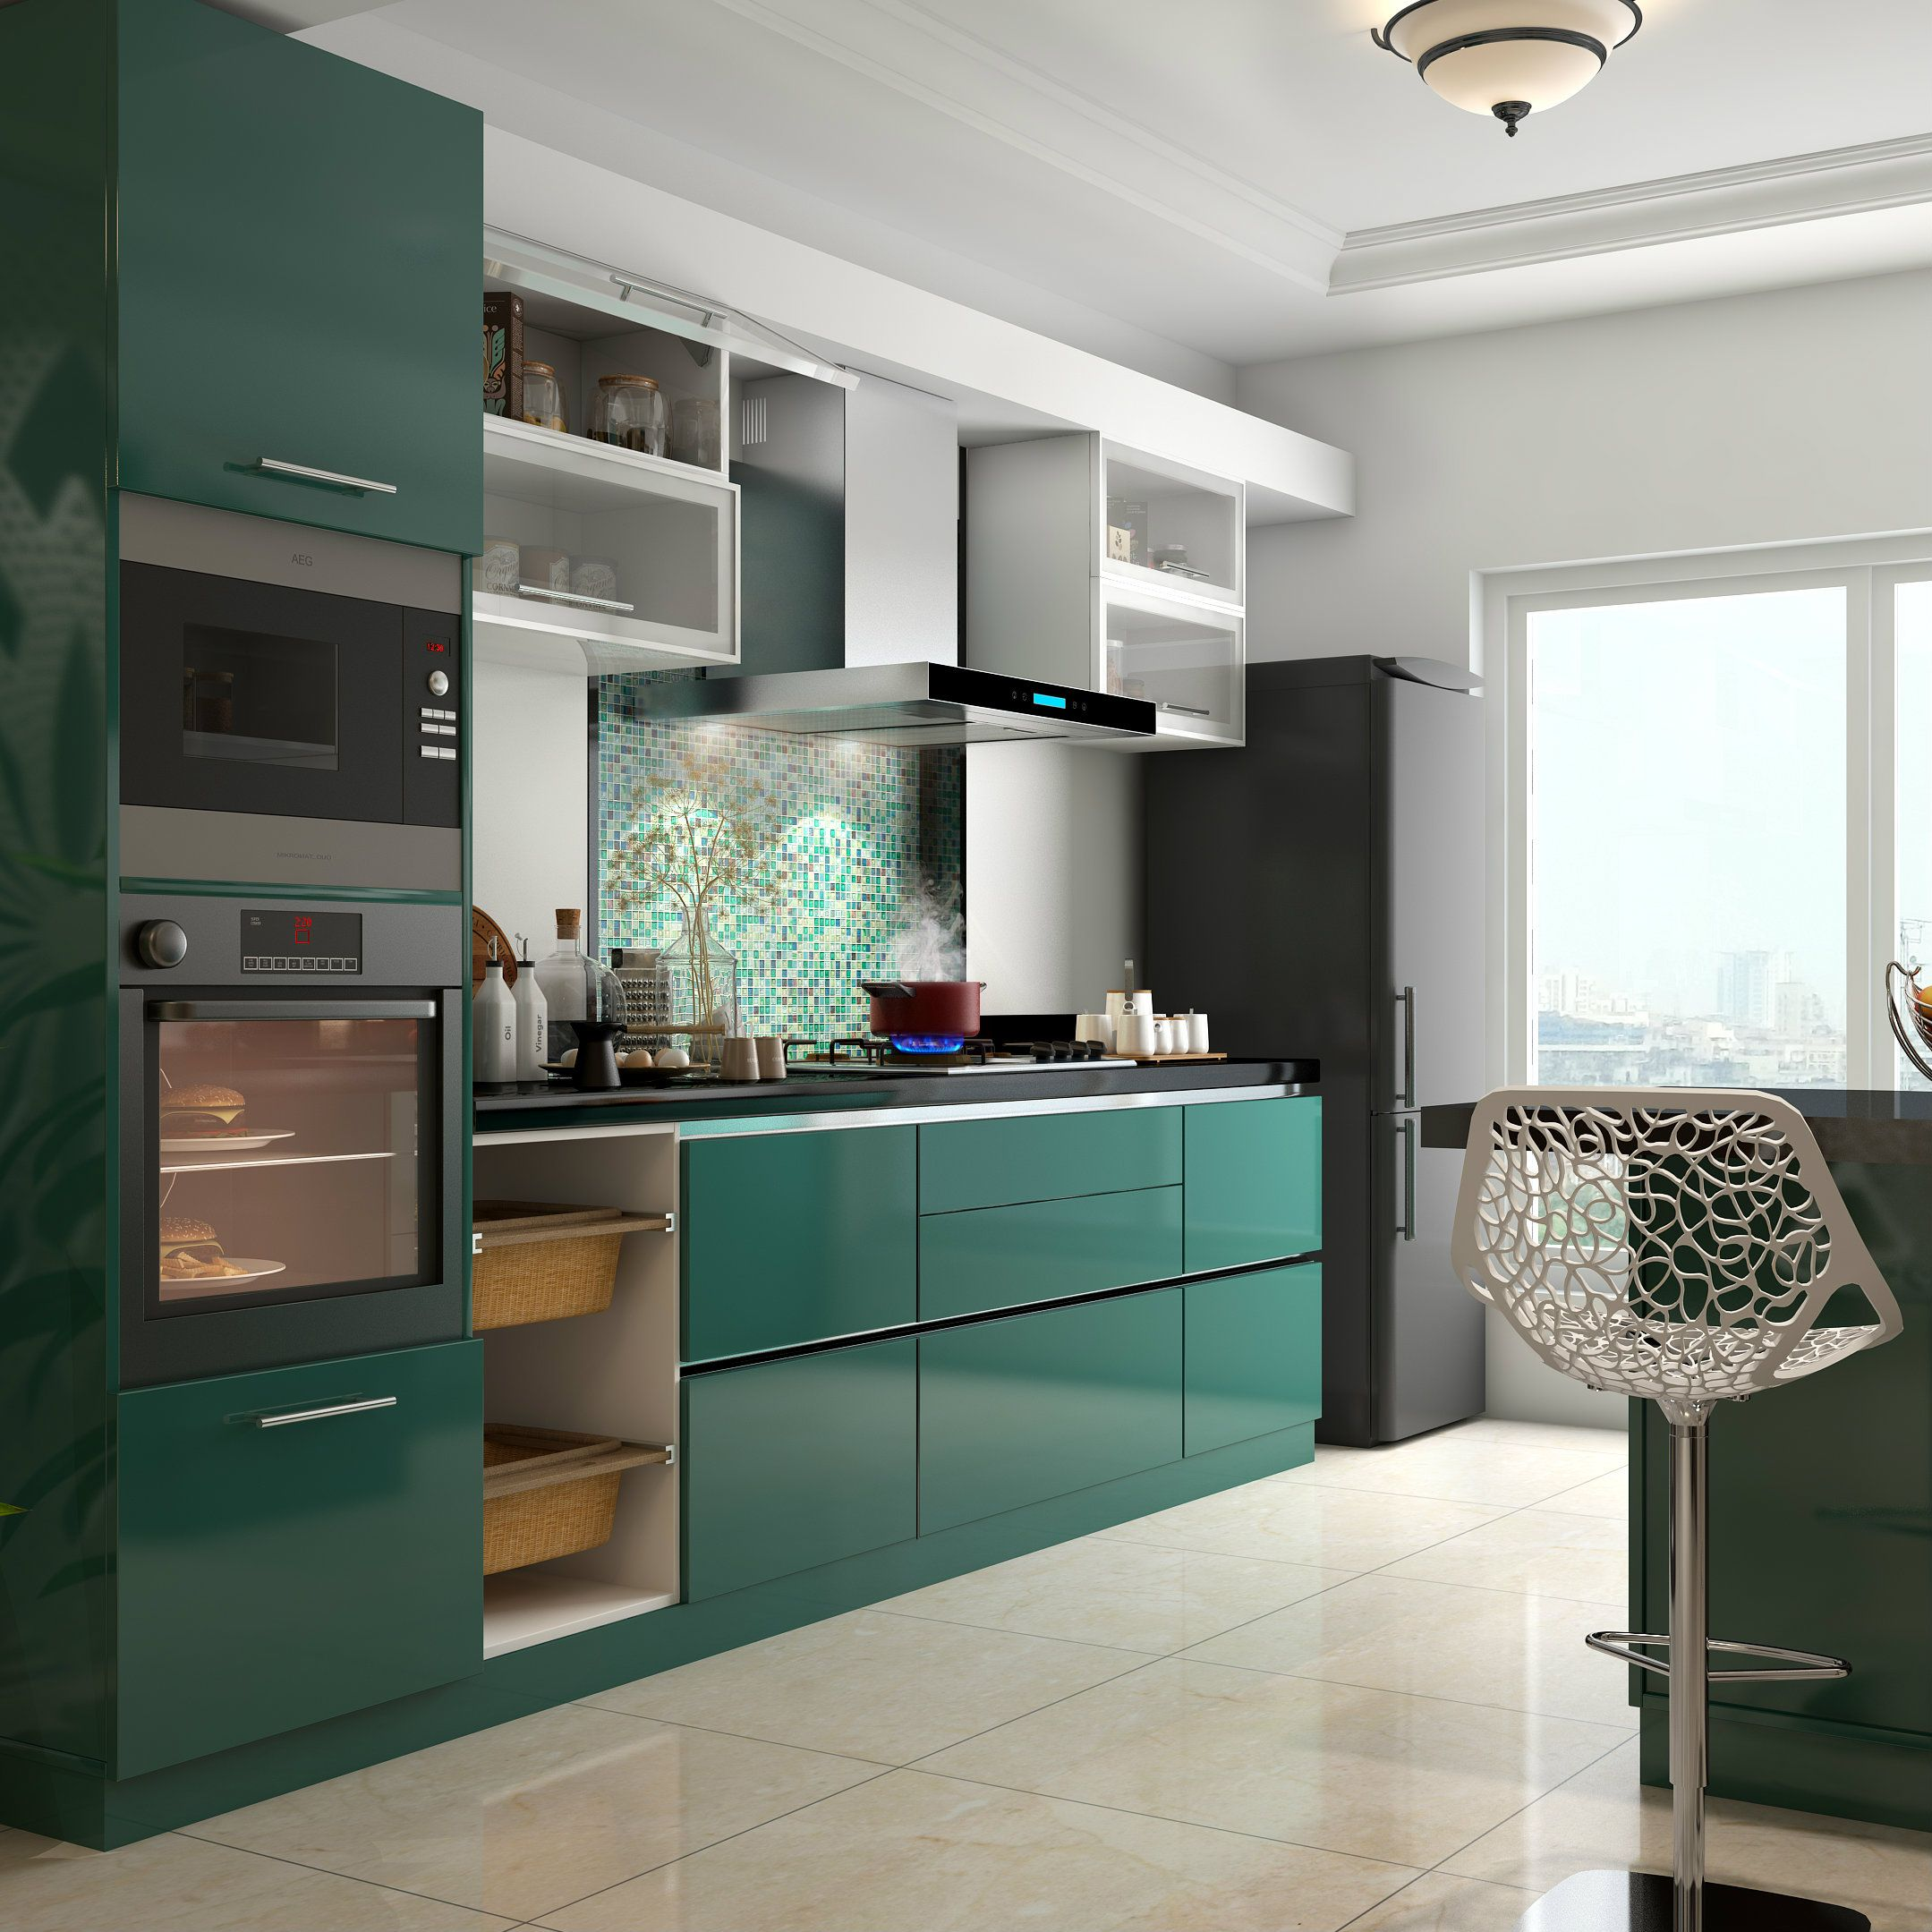 Kitchen Cabinets Colours: Glossy Green Cabinets Infuse Vitality To This Kitchen